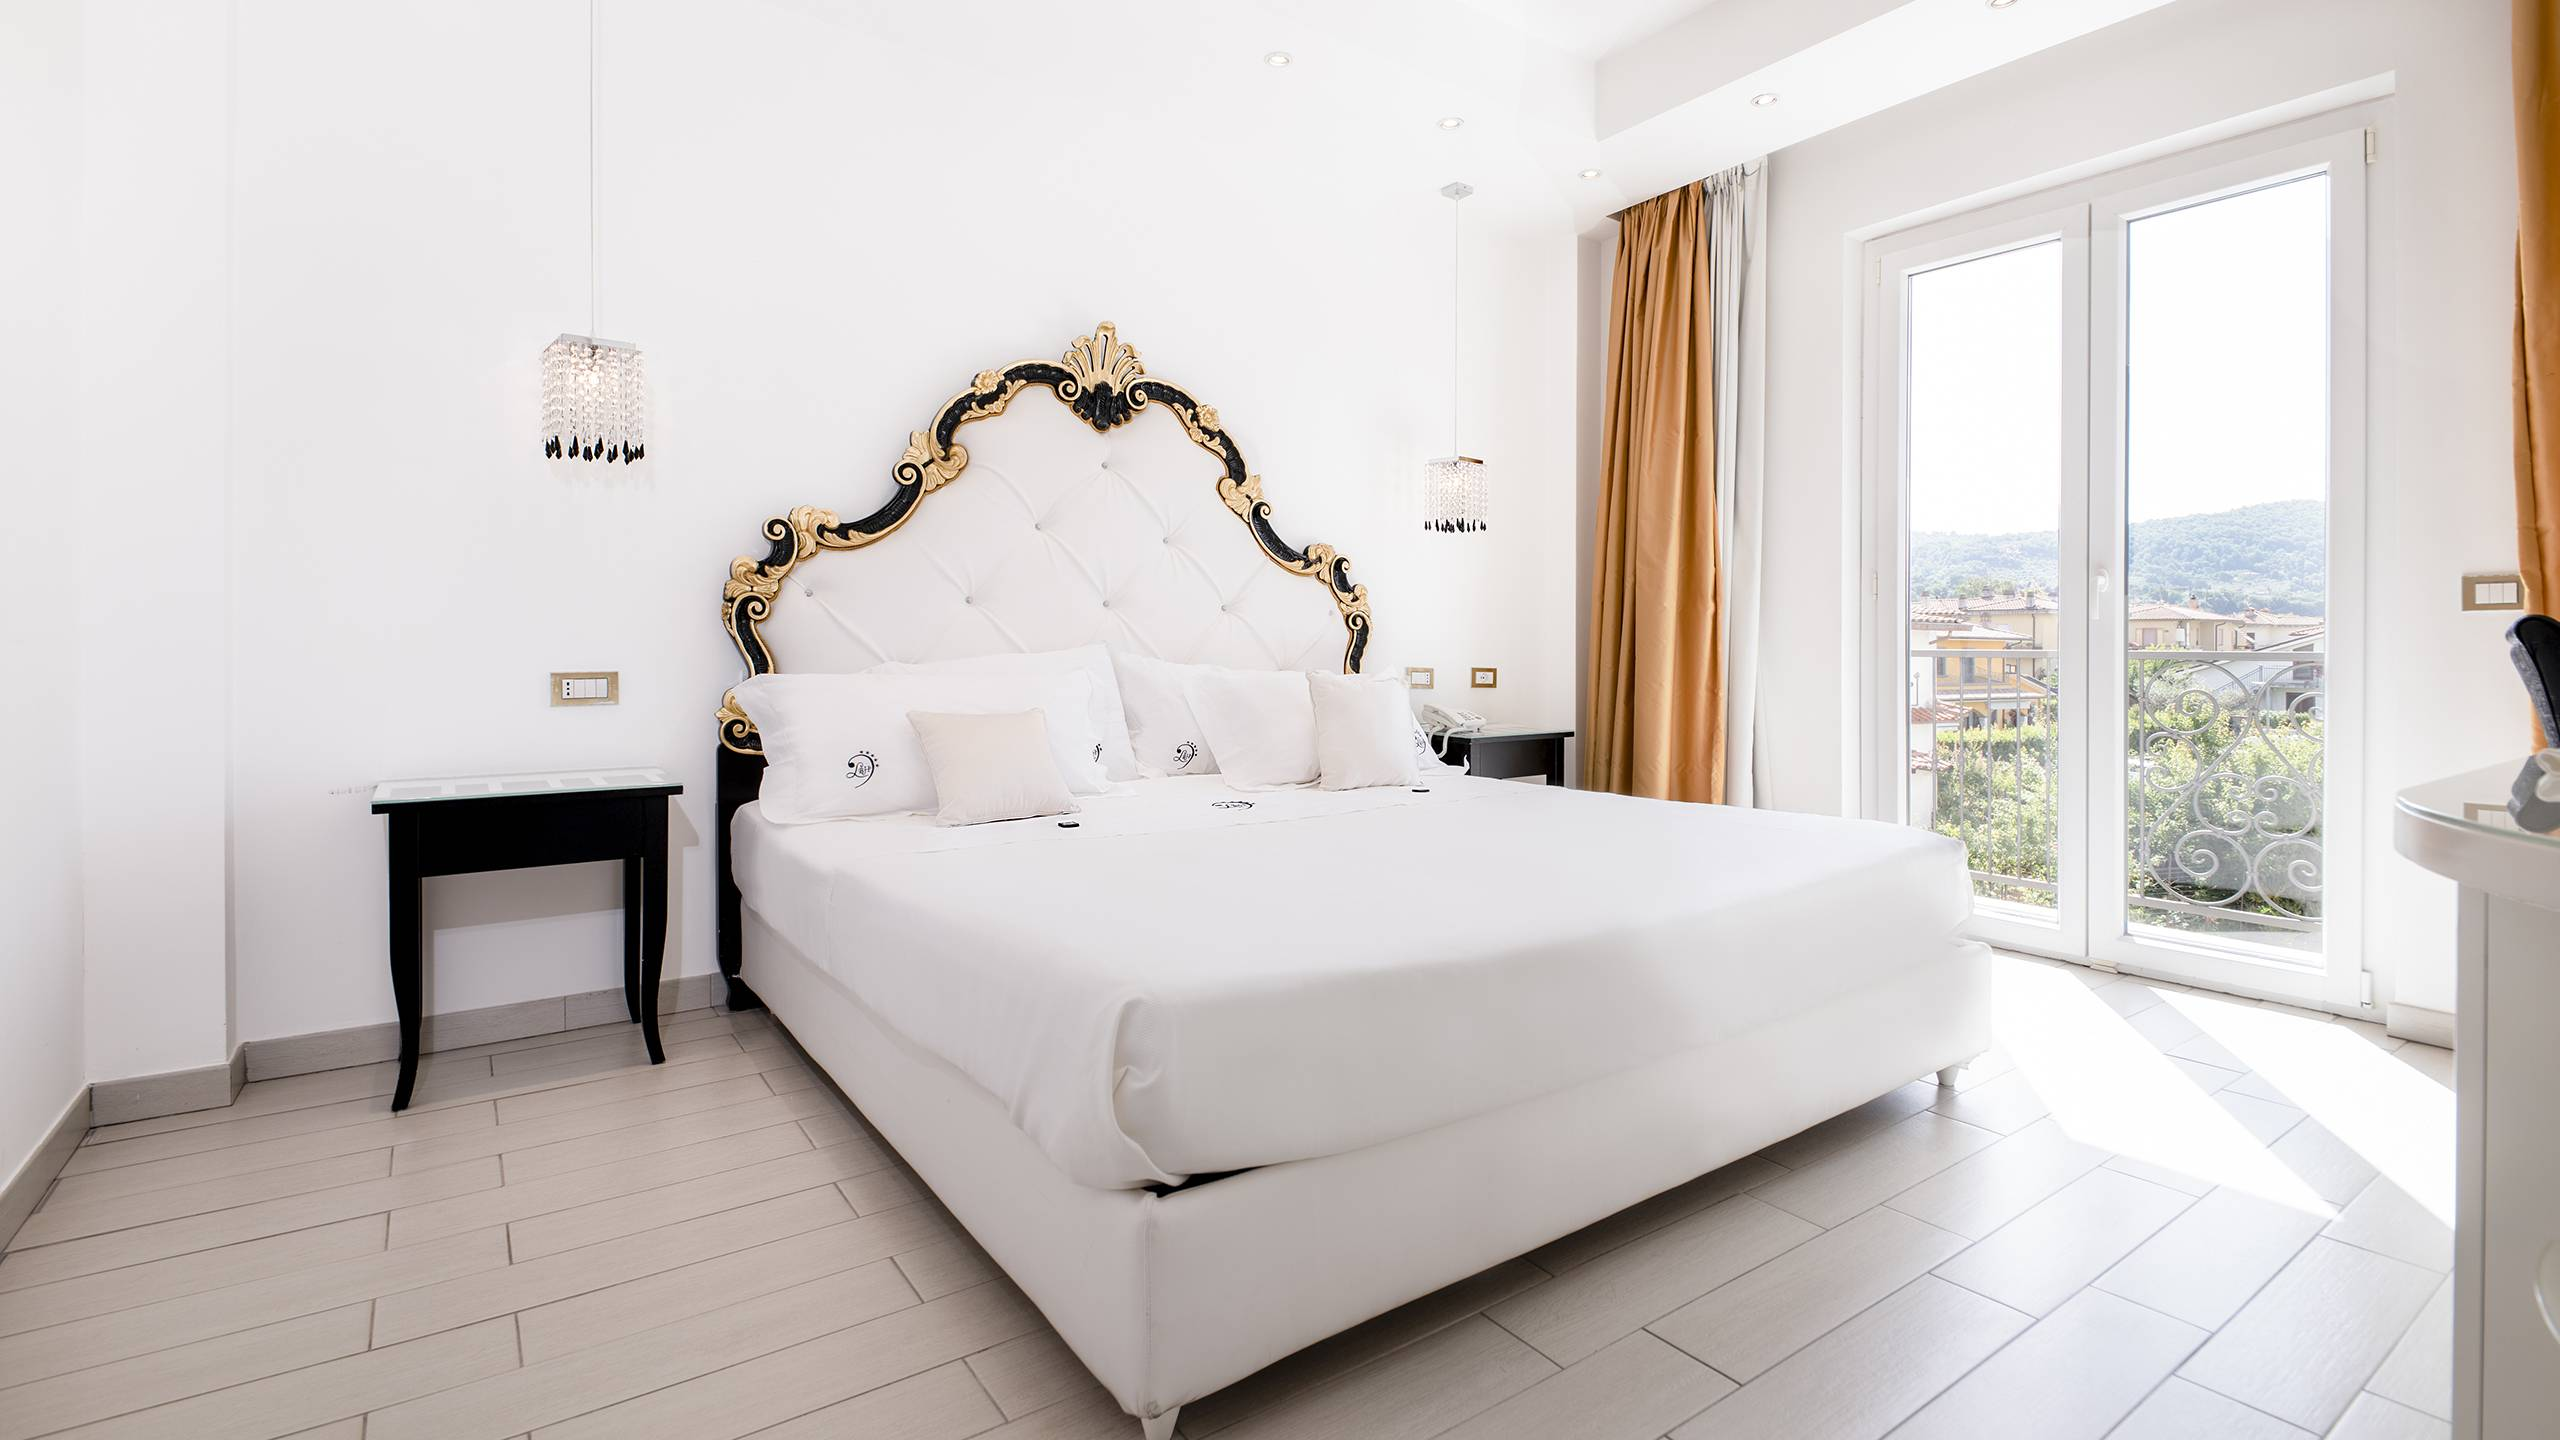 Ludwig-Boutique-Hotel-Bolsena-комната-suite-deluxe-spa-1